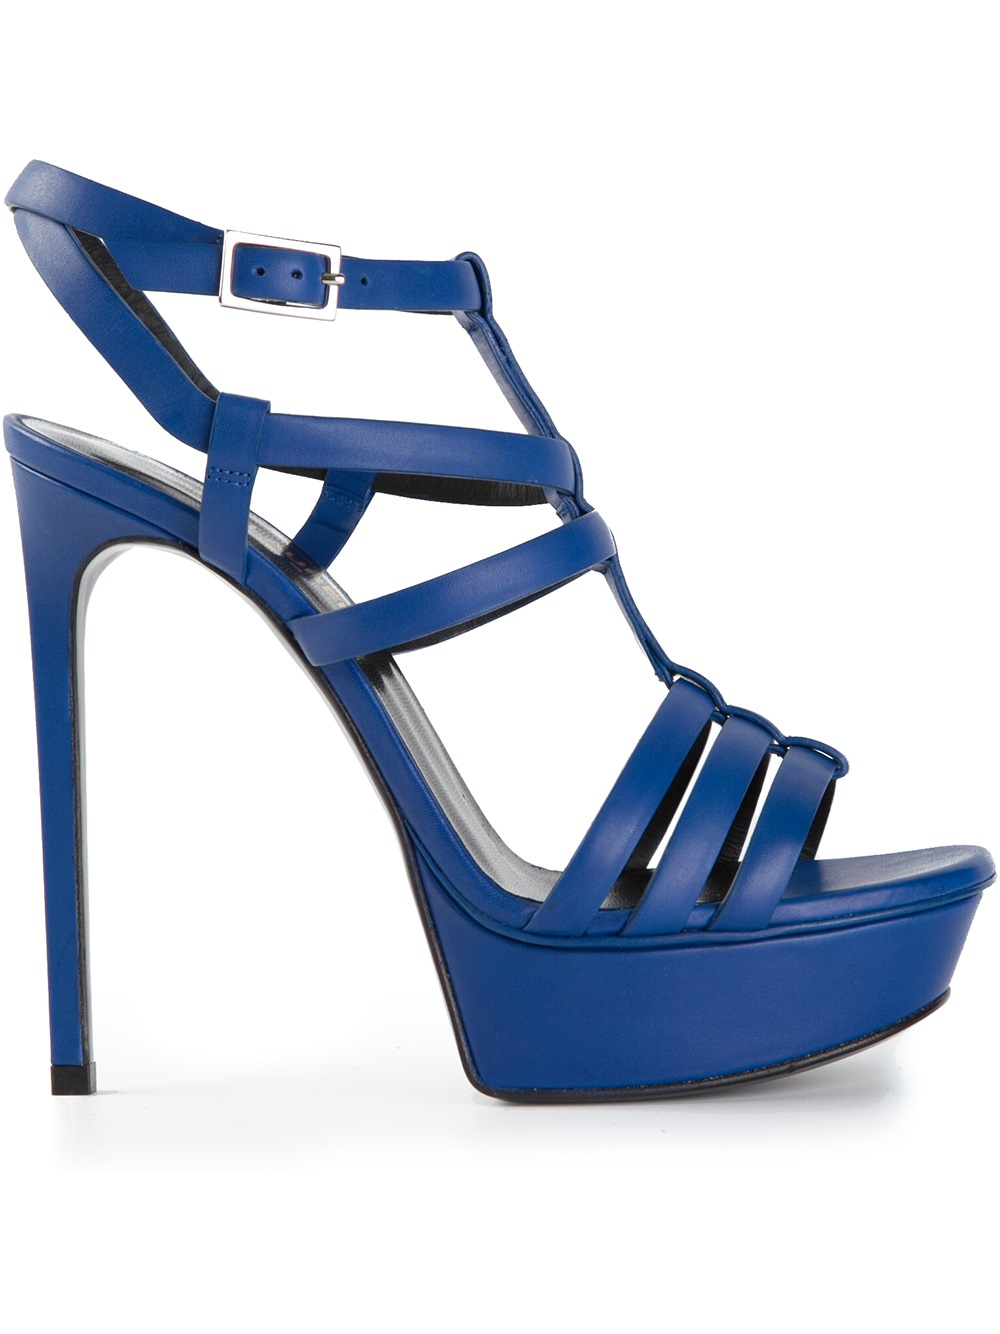 Saint laurent High Heel Sandals in Blue | Lyst